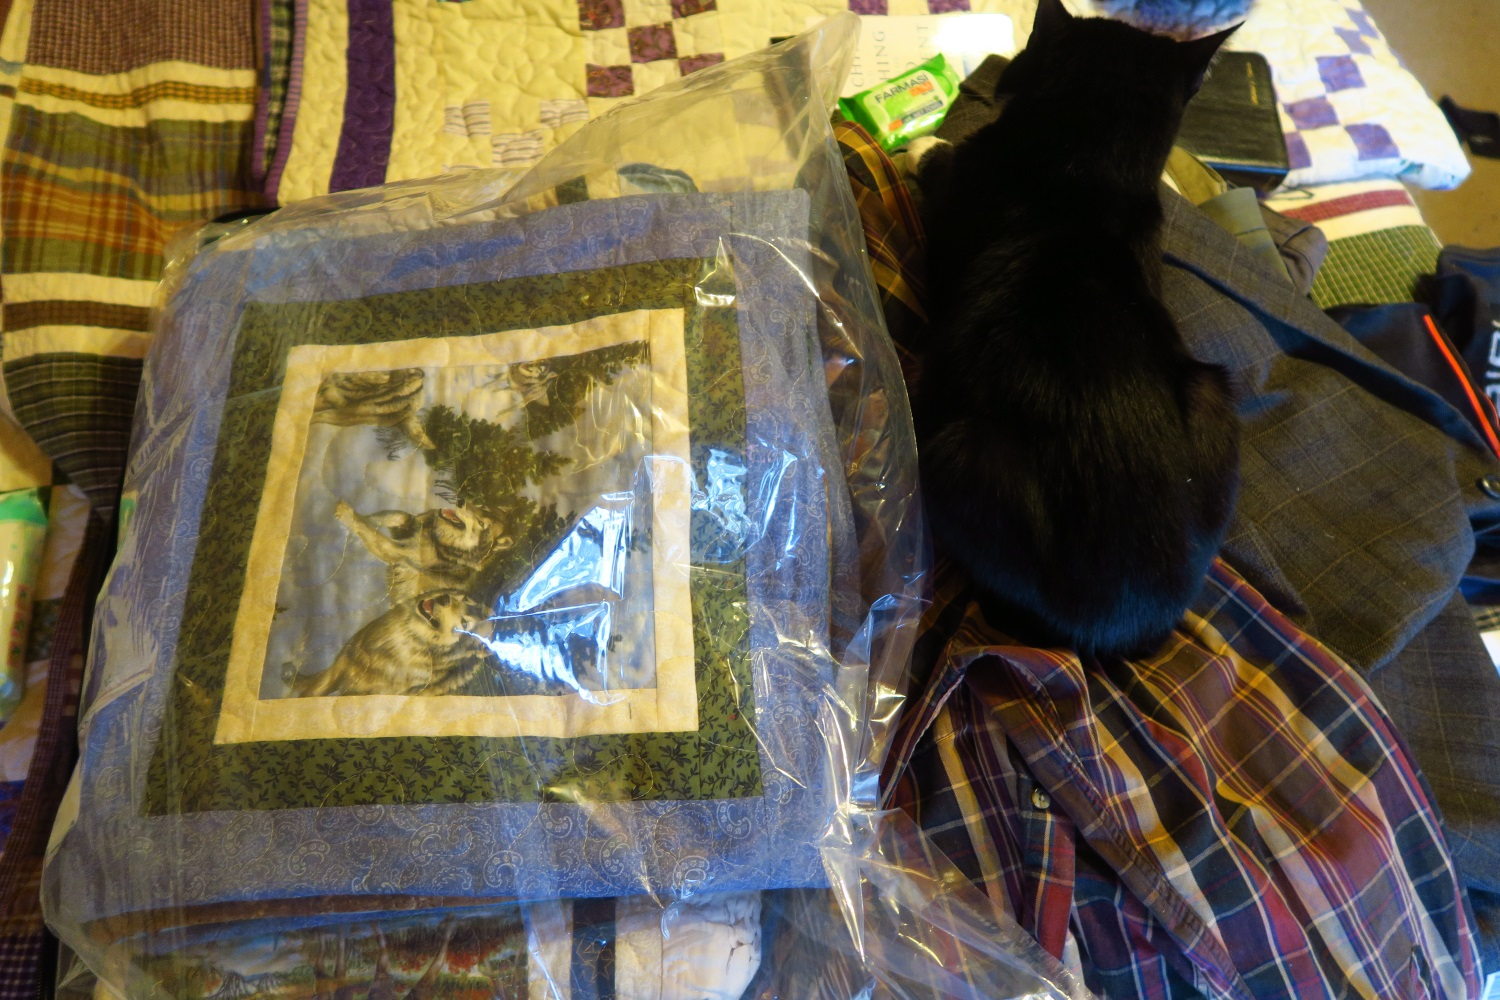 Our cats love to sit on our suitcases as we prepare things to leave. Here my husband has lain out his clothing items to take. Skagway, our elder cat, has laid claim to them! Here's the set in a bag before the air is suctioned out. When my husband came up and saw it, however, he made the cat move!